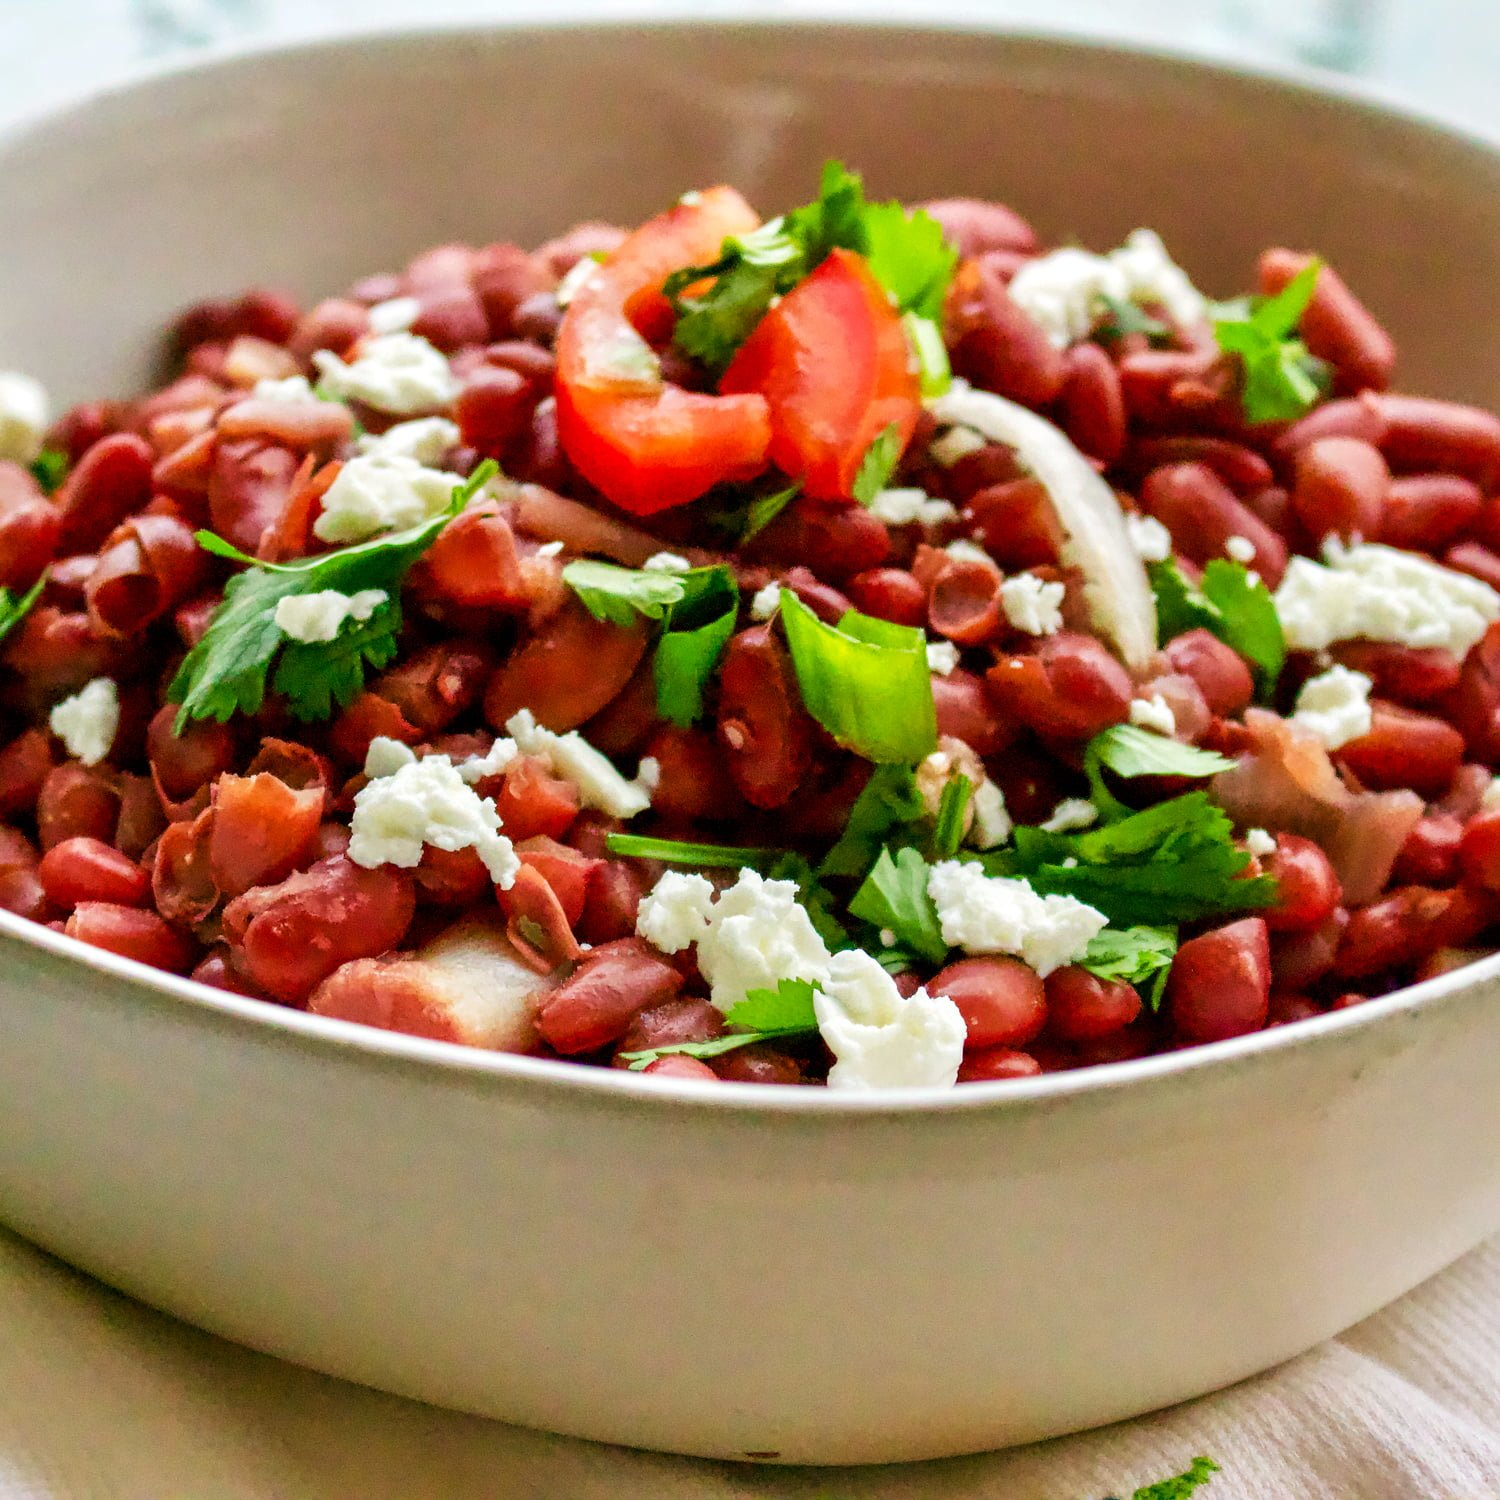 Authentic Traditional Mexican Beans- Frijoles Autenticos Mexicanos- basic, authentic traditional Mexican beans recipe. The dish is nutritious, easy to make and so traditional that cannot miss from a respectable Mexican table. A staple in the Mexican cuisine, this dish is a real comfort food.